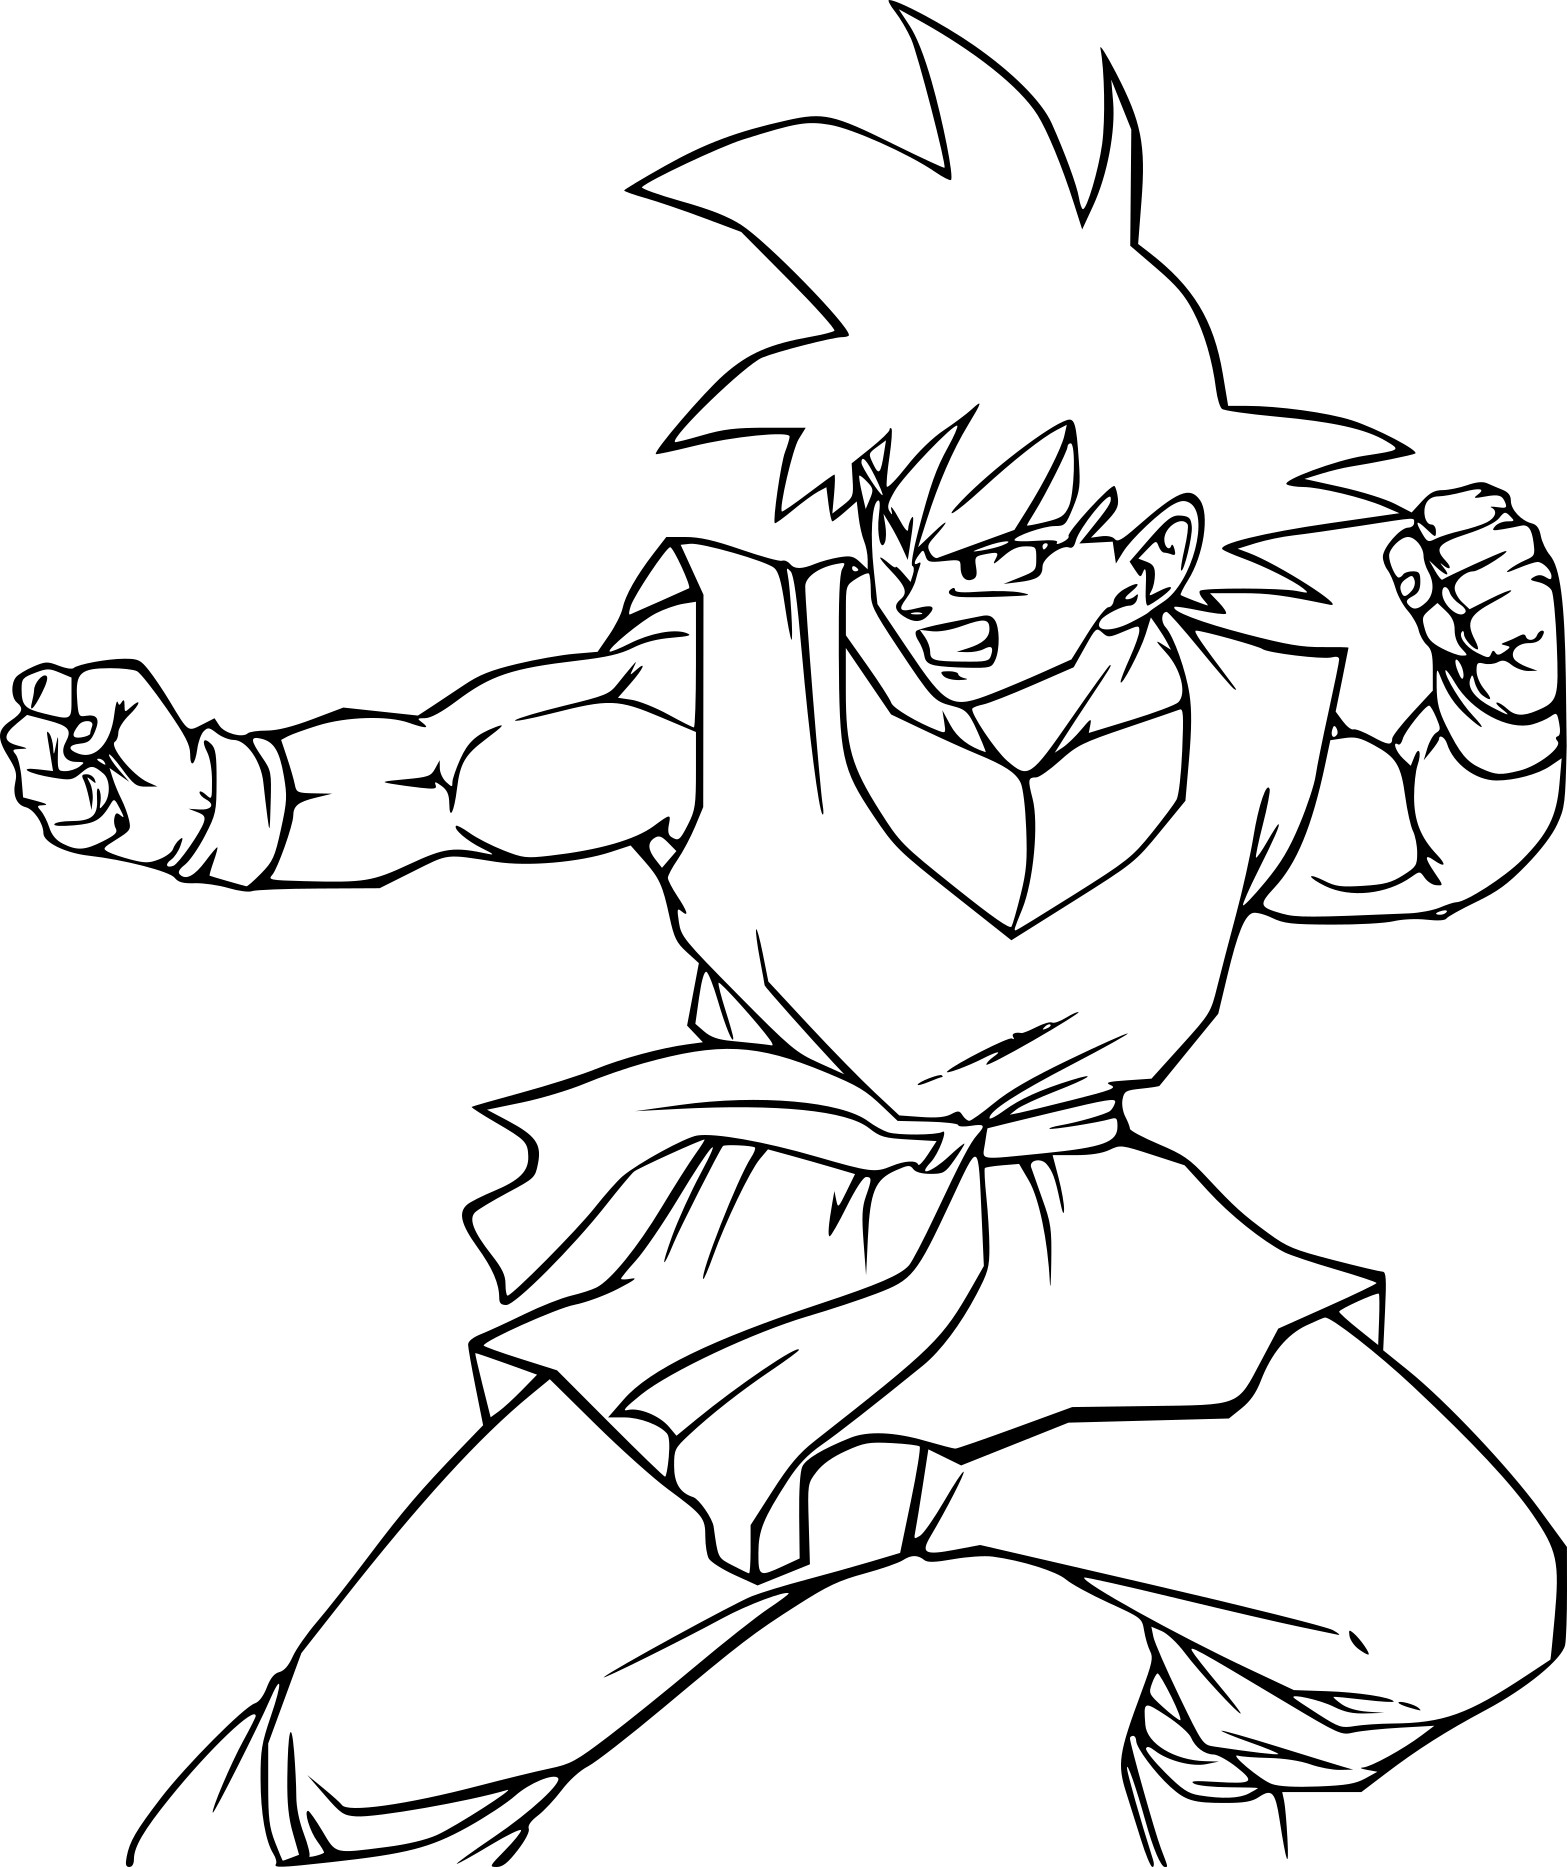 Beau Dessin A Colorier Dragon Ball Z Gratuit